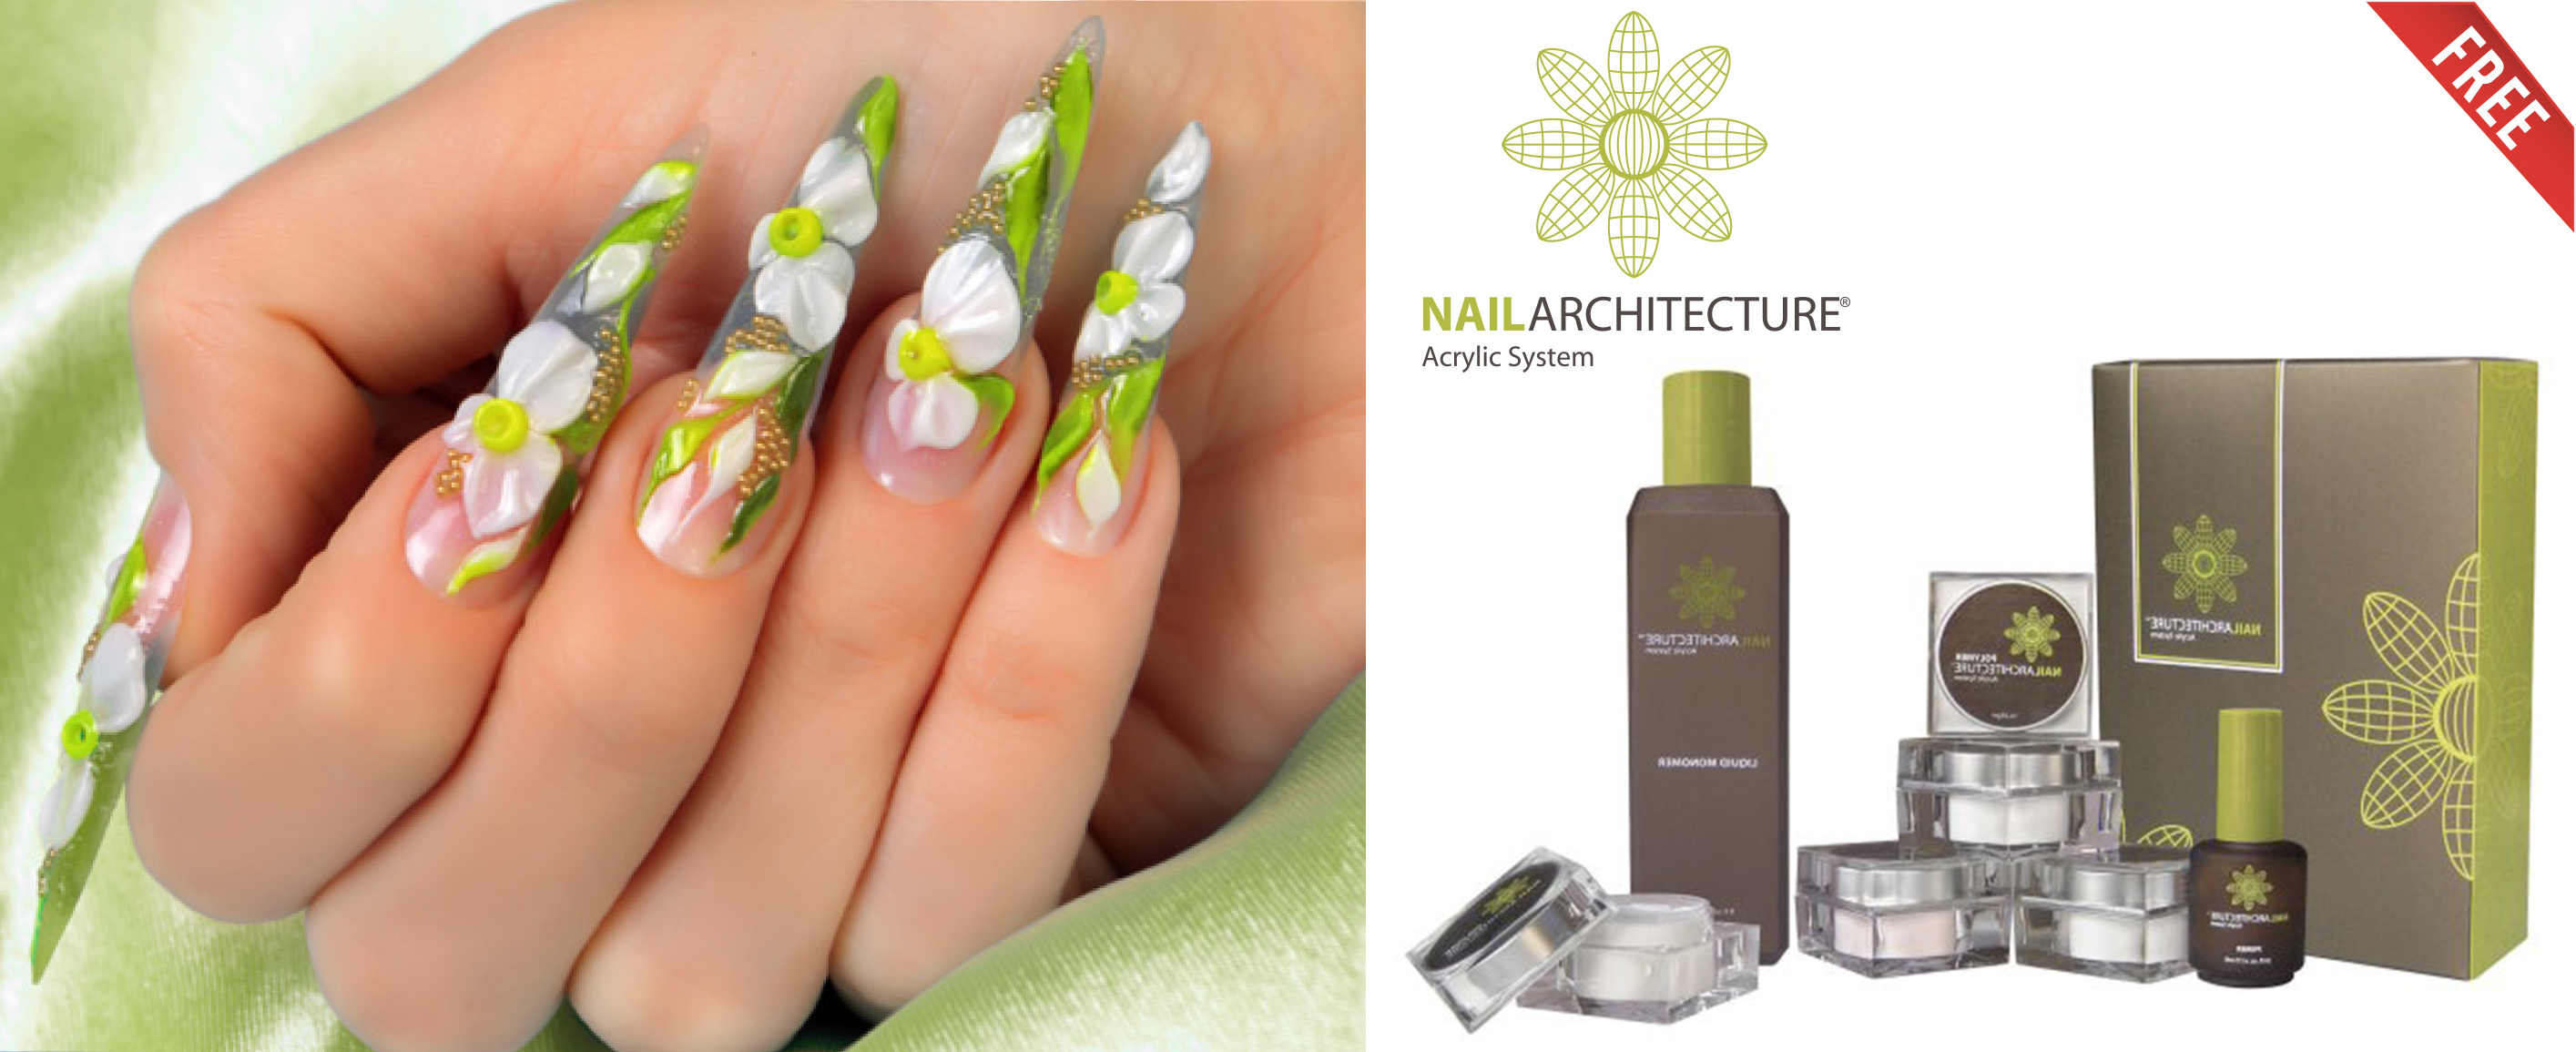 Lechat Acrylic Nail Extension System Course - Lechat Nails Middle East